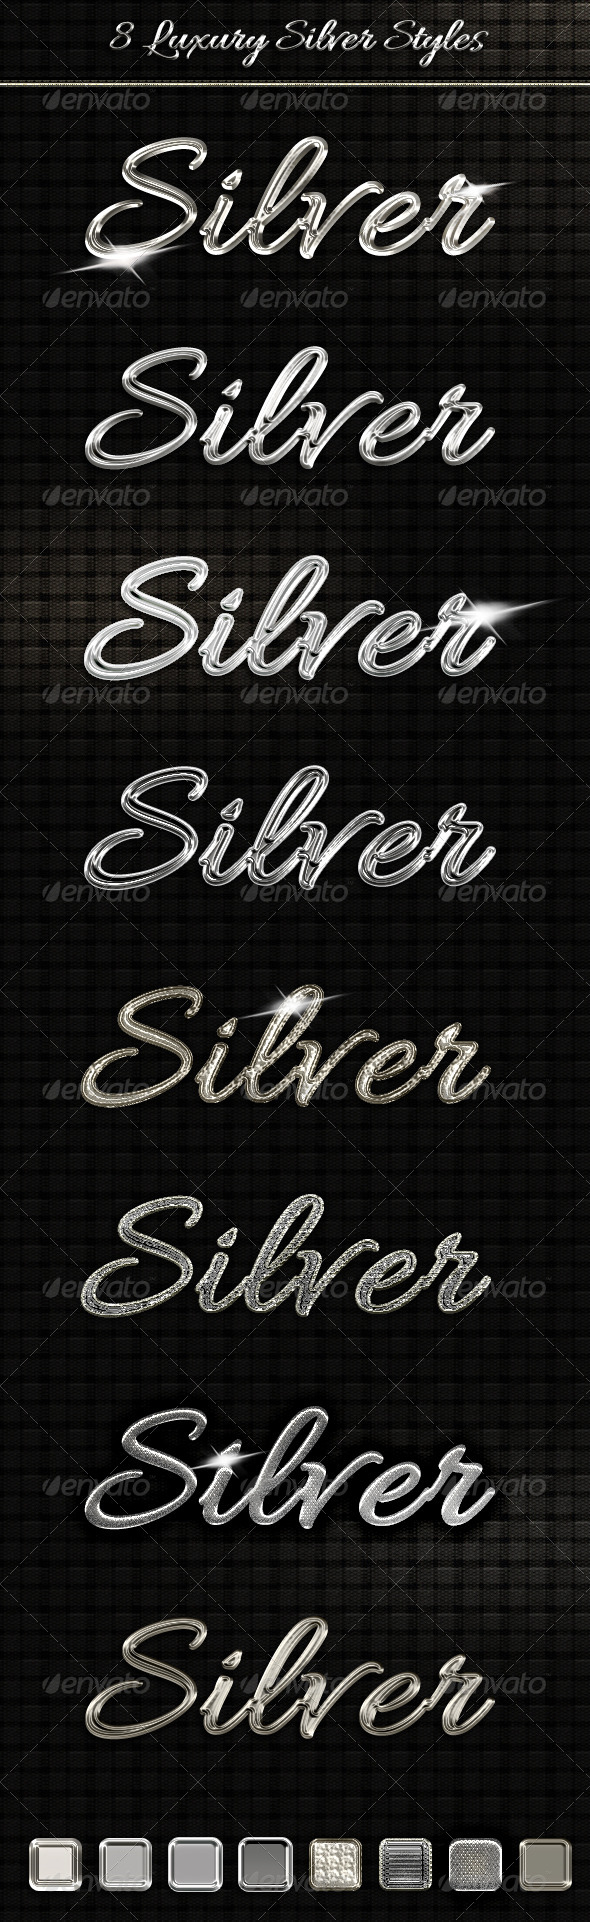 8 Luxury Silver Text Styles - Text Effects Styles